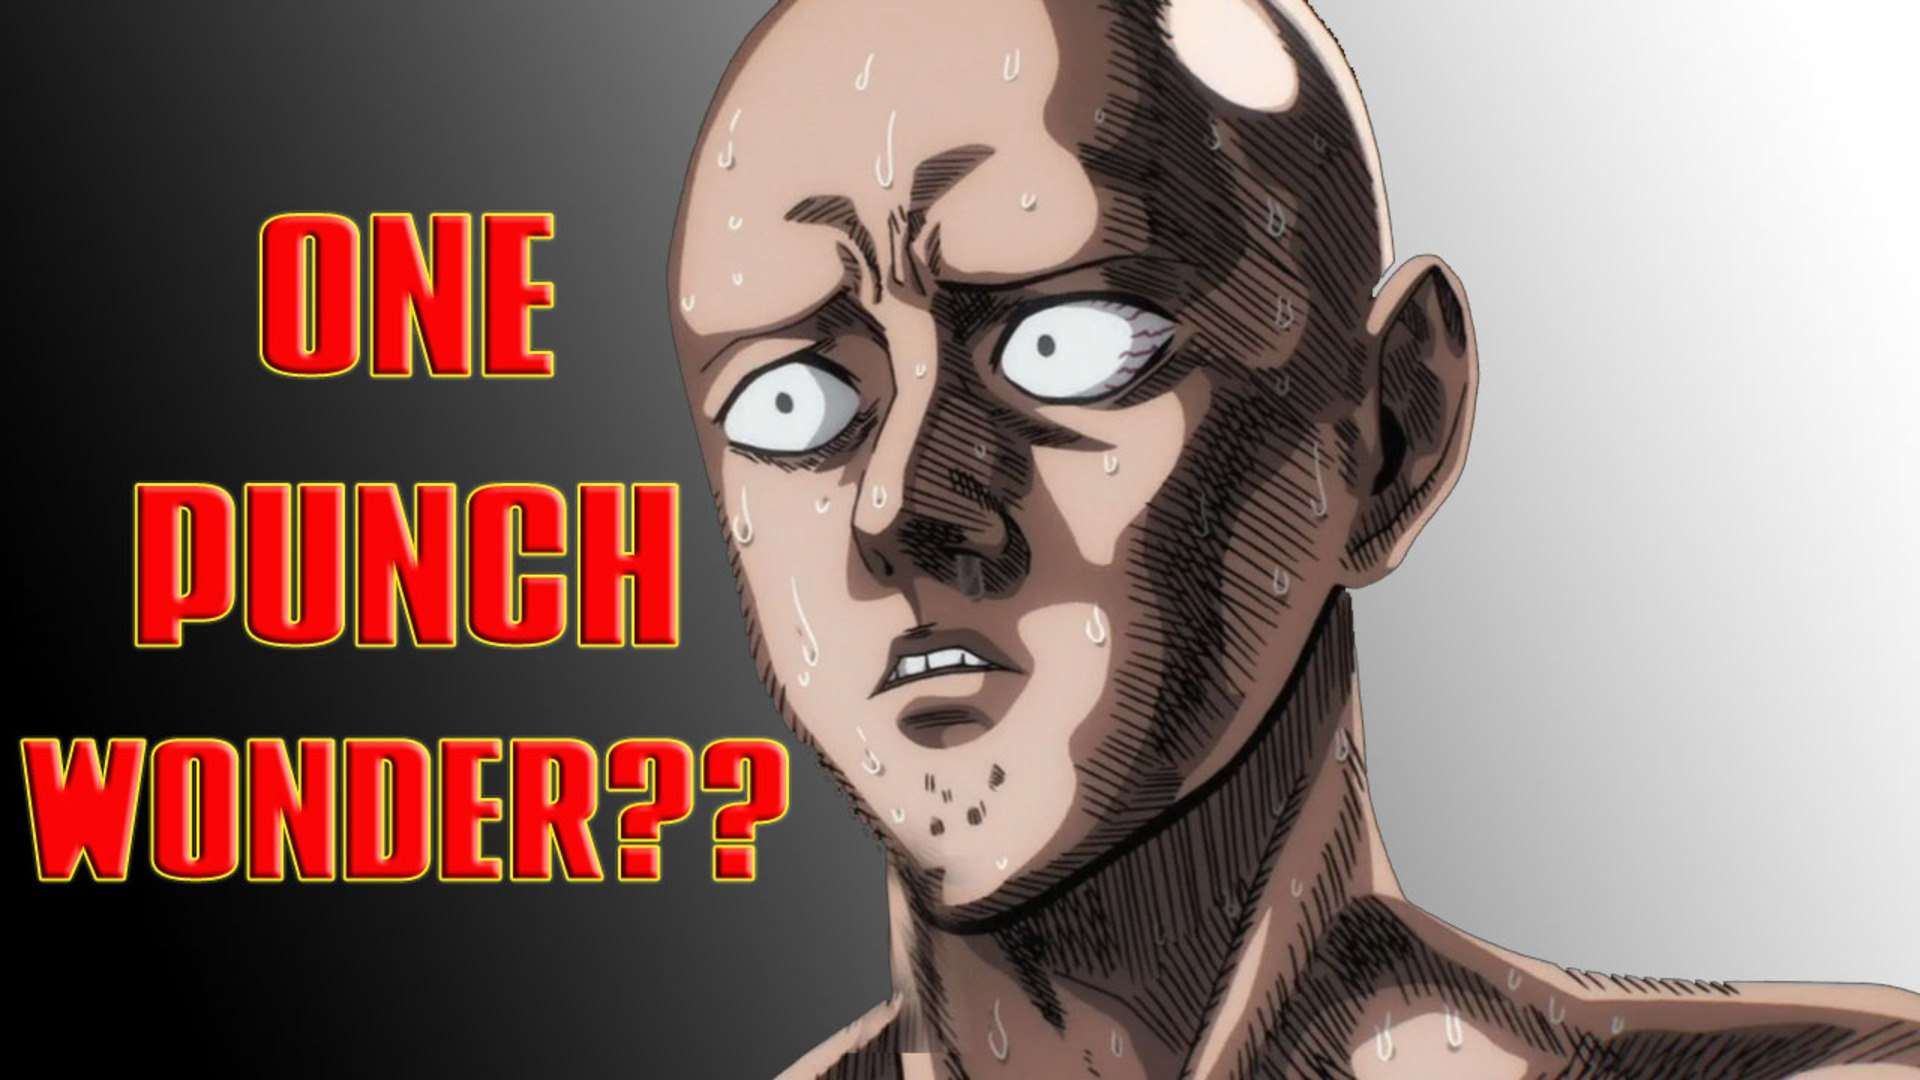 Will One Punch Man Season 2 Be a Major LETDOWN??